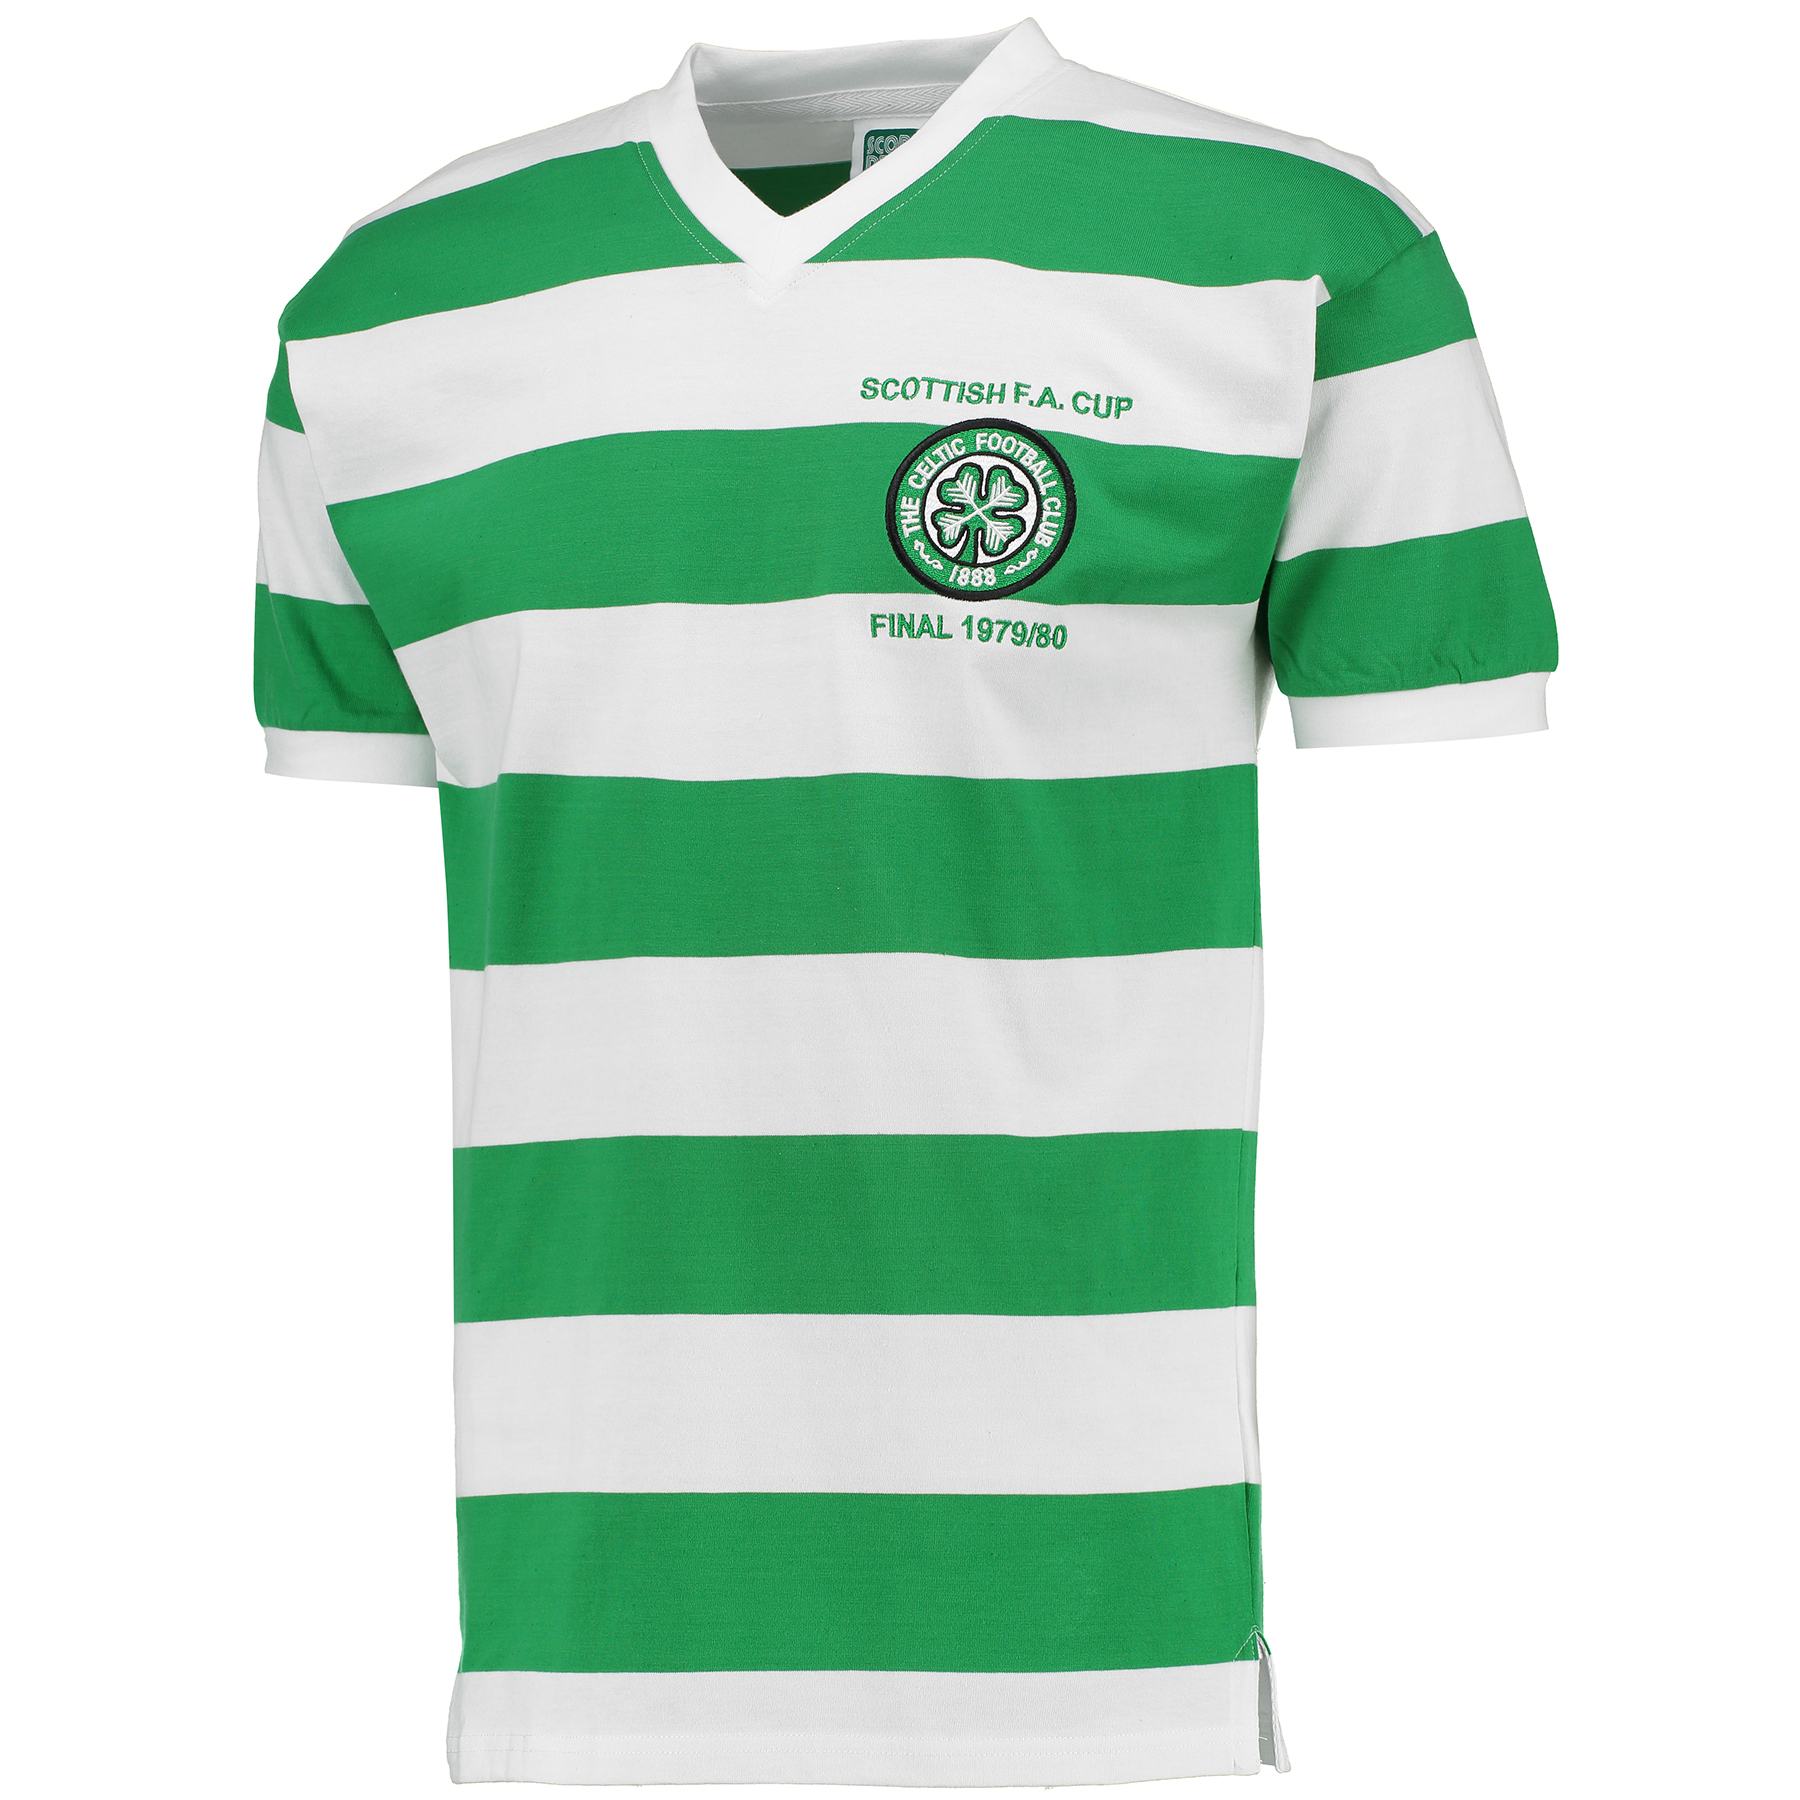 Celtic 1980 Scottish Cup Final shirt